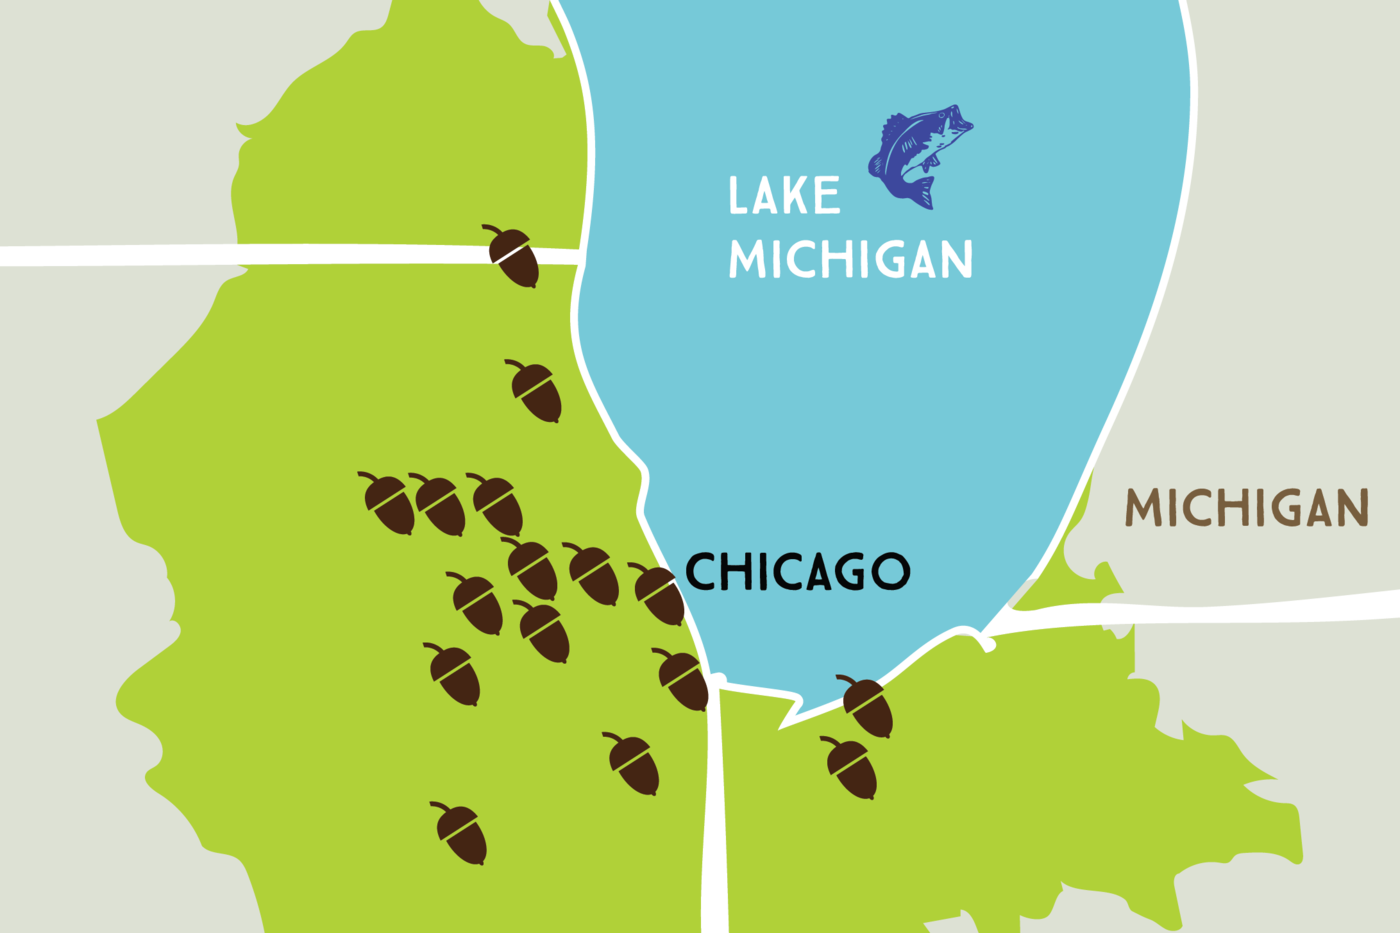 Map showing portions of the states of Wisconsin, Illinois, Indiana, and Michigan around the south shore of Lake Michigan. A brighter green indicates the Chicago Wilderness Region, which covers portions of each state: a small amount of southwestern Michigan and southeastern Wisconsin, a larger portion in northwest Indiana, and the largest portion around the Chicagoland area of Illinois. Chicago is the only city marked on the map. Small acorn items dot the map in Illinois and Indiana.